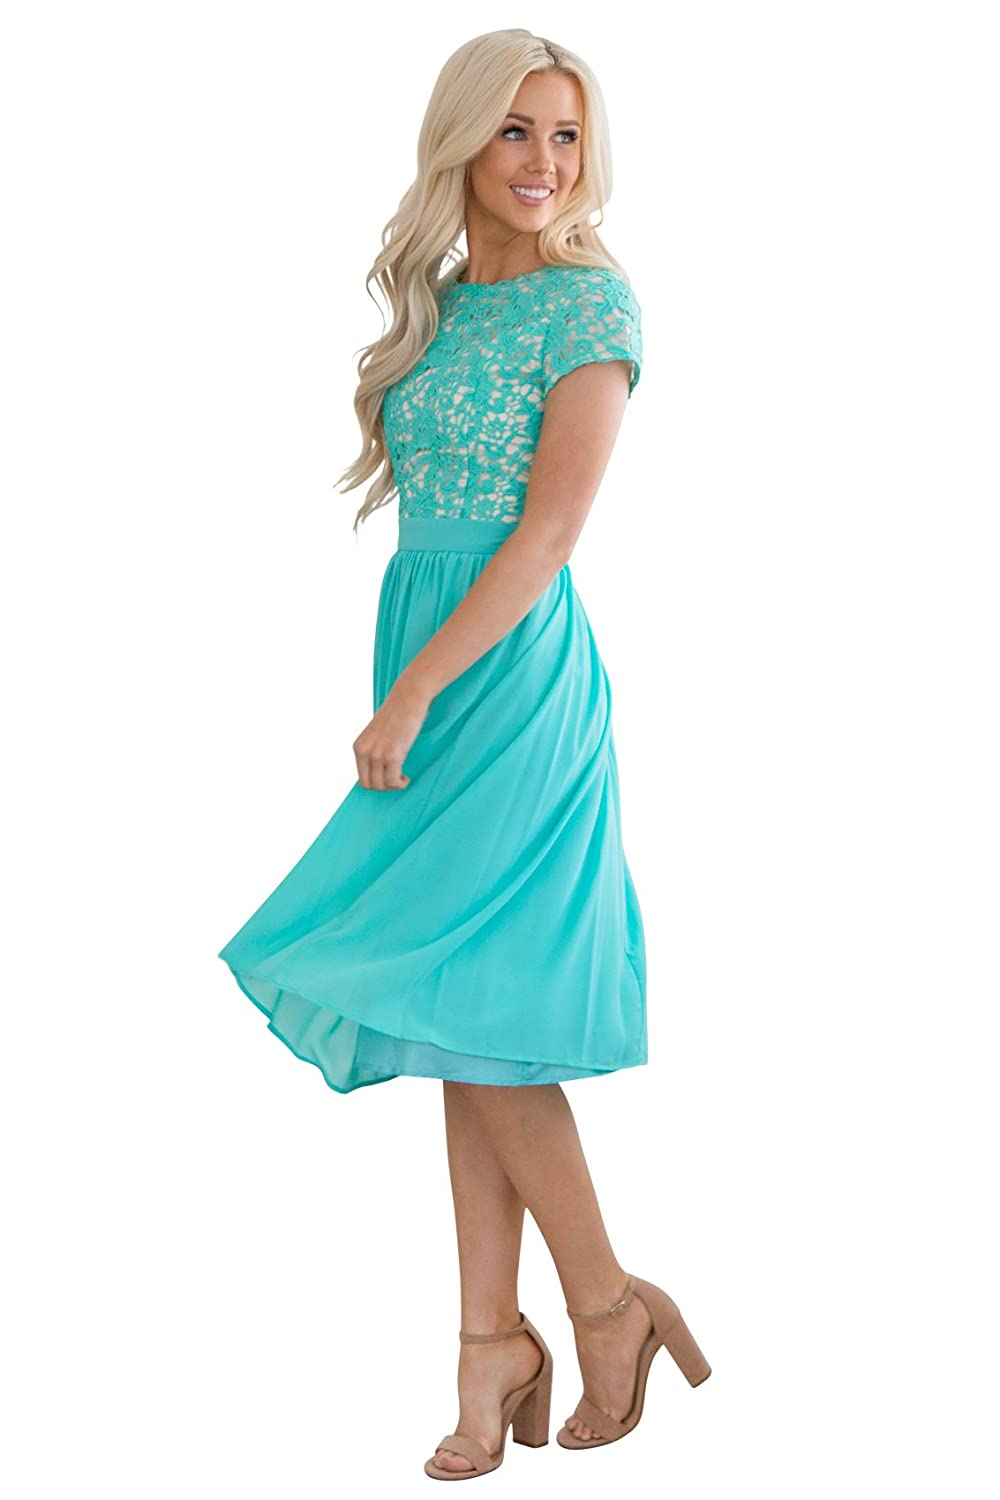 a6f0d546f2ae Modest Semi-Formal Dress - Perfect for Homecoming or Prom, Holiday Parties  or as a Modest Bridesmaid Dress! Beautiful lace bodice with flowing chiffon  skirt ...